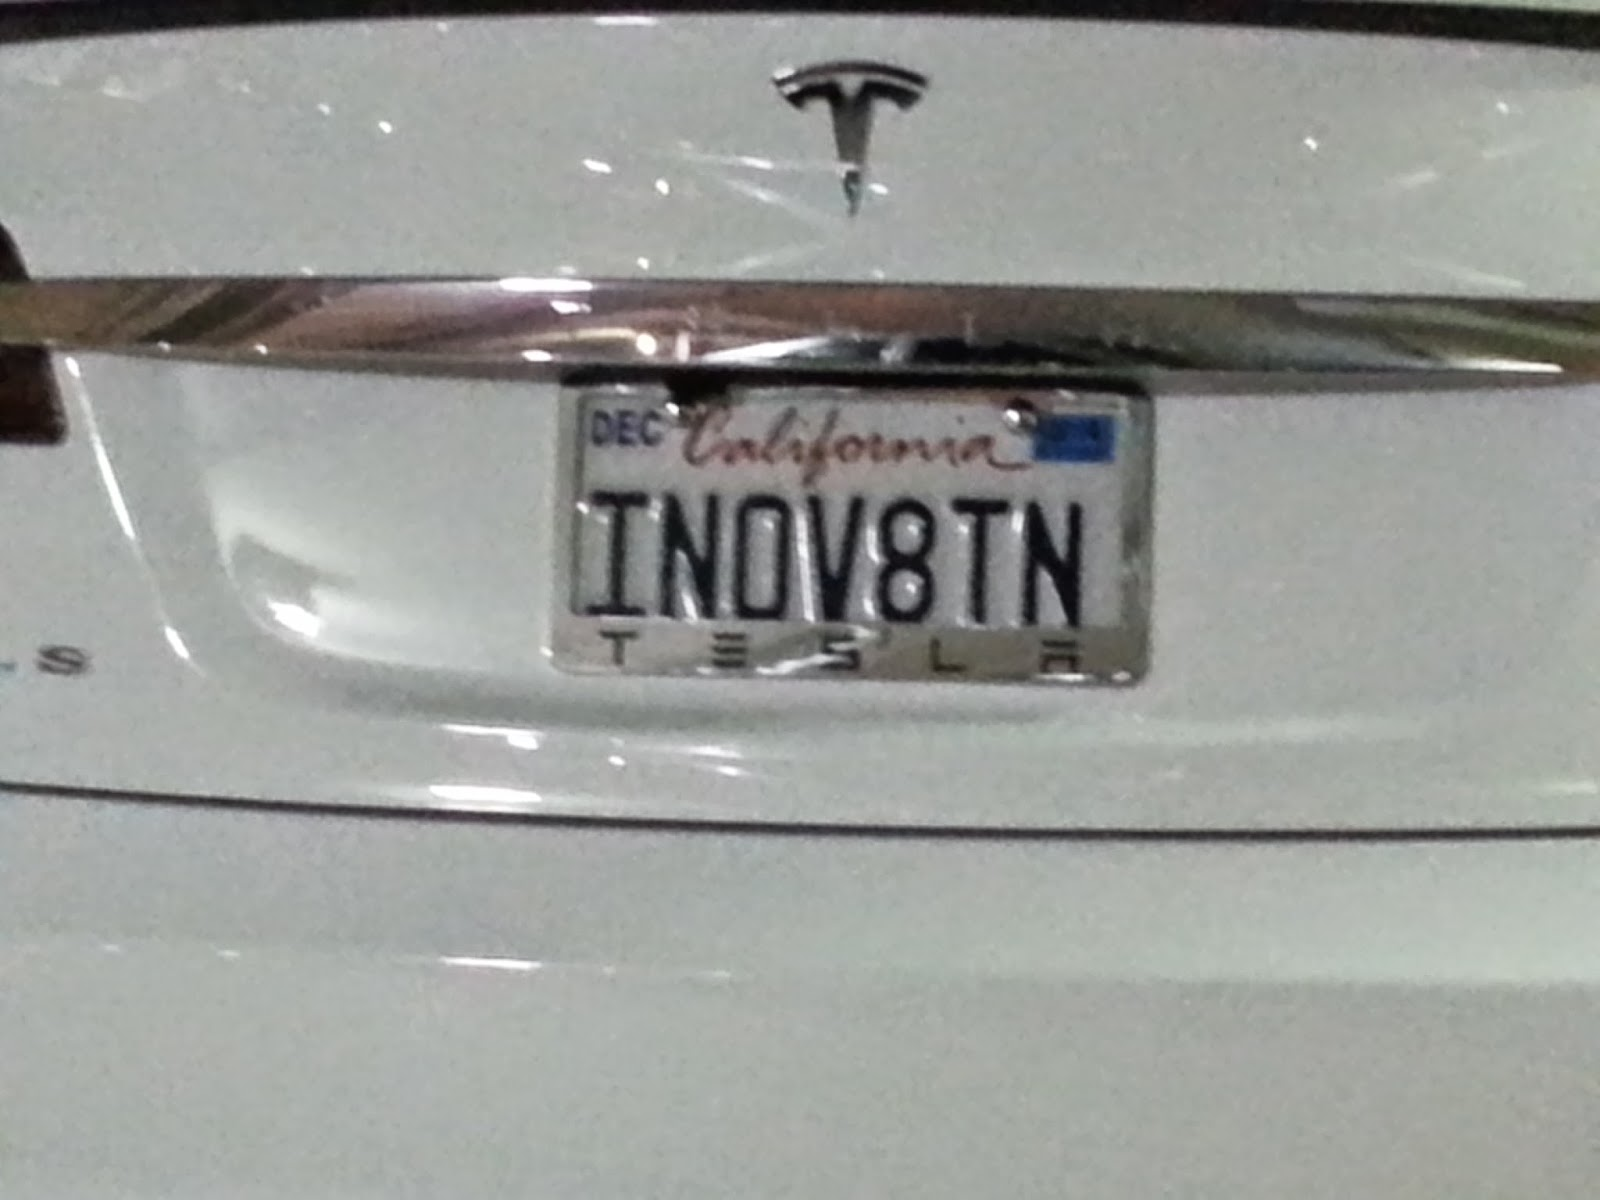 and especially perfect when found on a tesla